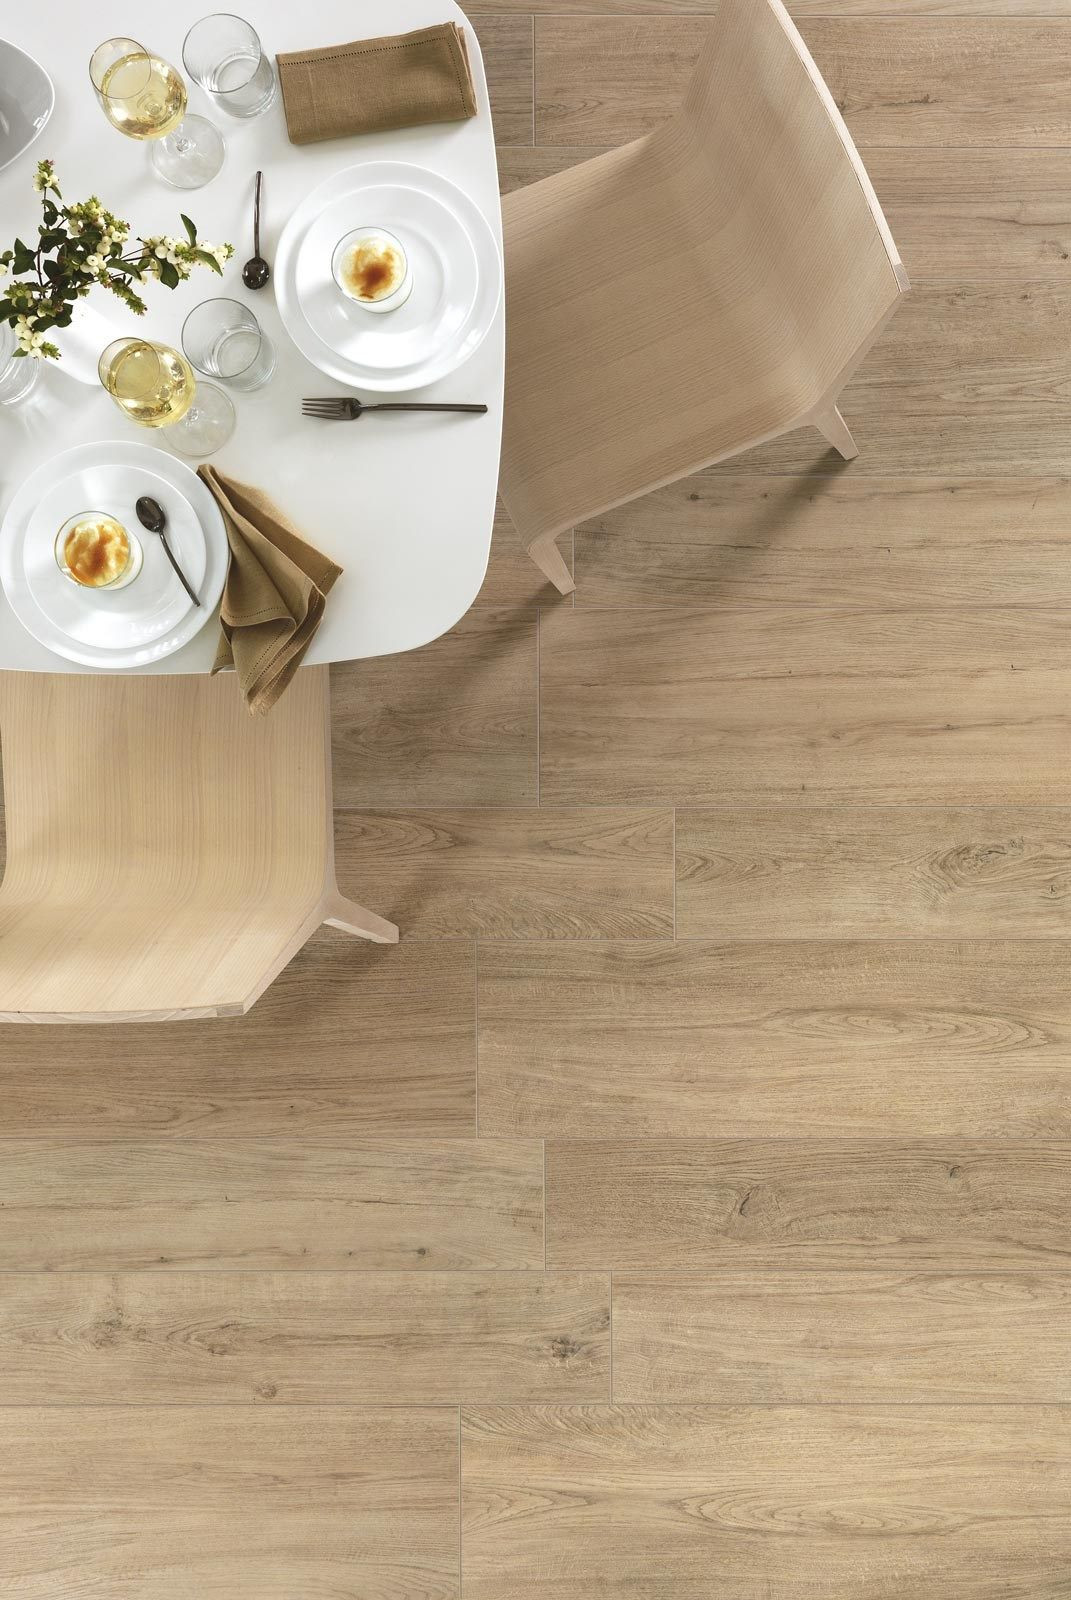 bj hardwood flooring of porcelain stoneware floor tiles with wood effect woodliving by ragno within porcelain stoneware floor tiles with wood effect woodliving by ragno marazzi group